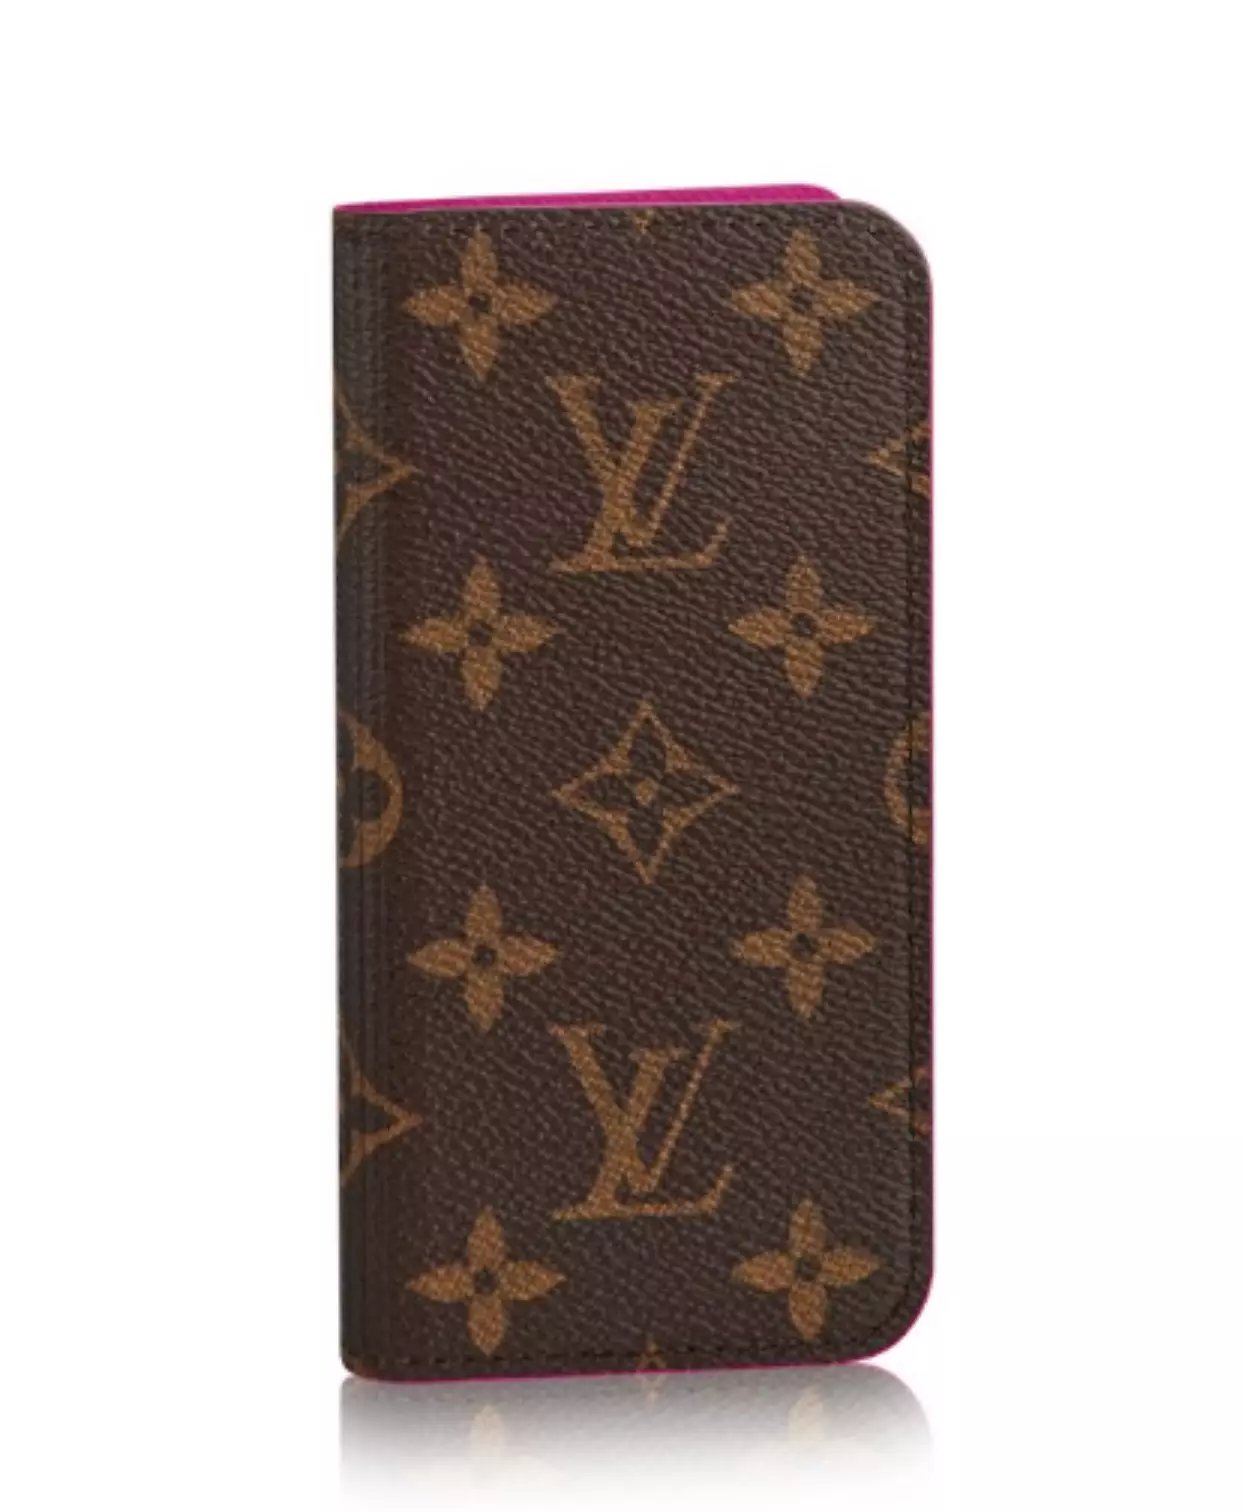 iphone hülle mit foto lederhülle iphone Louis Vuitton iphone 8 Plus hüllen iphone 8 Plus a8 Plus leder coole hüllen iphone 8 Plus wann kommt iphone neues apple iphone iphone 8 Plus schutzhülle apple iphone 8 Plus billig